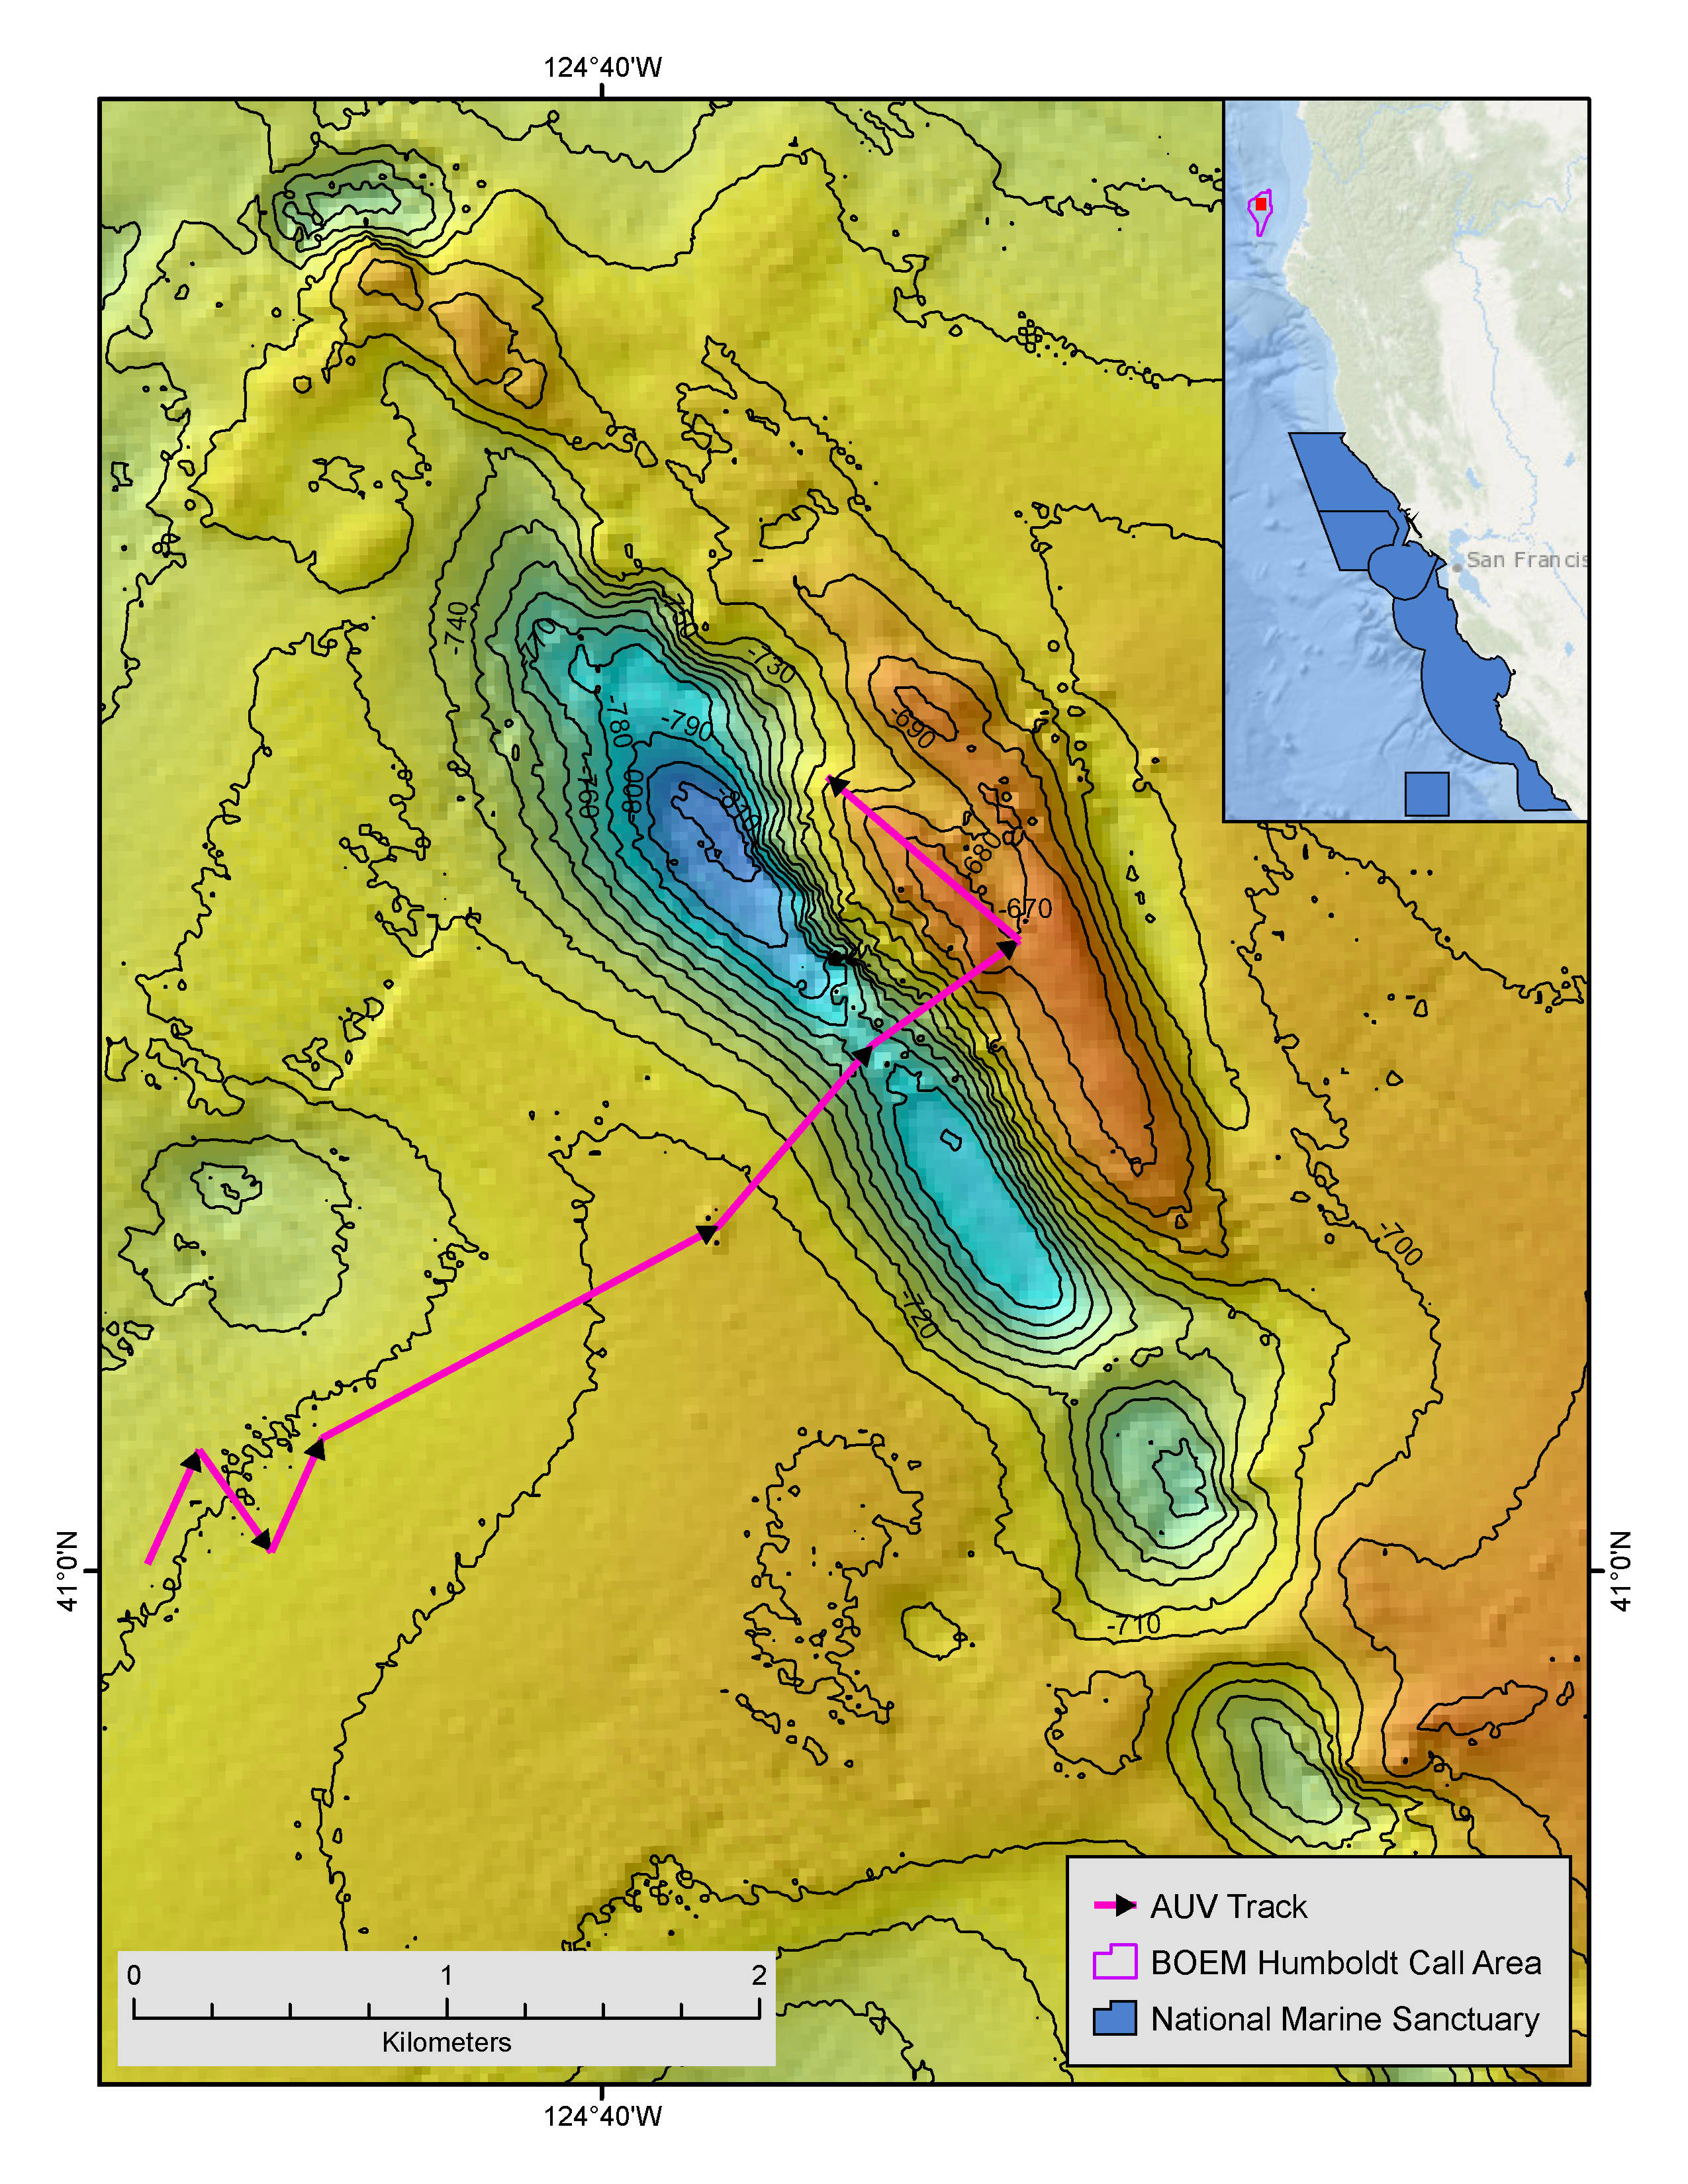 Surveying Deep-sea Corals, Sponges, and Fish Habitat Off the ... on massif map, lagoon map, glacier map, ocean map, coral reef map, channel map, gulf map, sailing map, mediterranean map, south east asia map, caribbean map, estuary map, lake map, mariana trench map, peninsula map, seabed map, world map, volcano map, sound map, bay map,